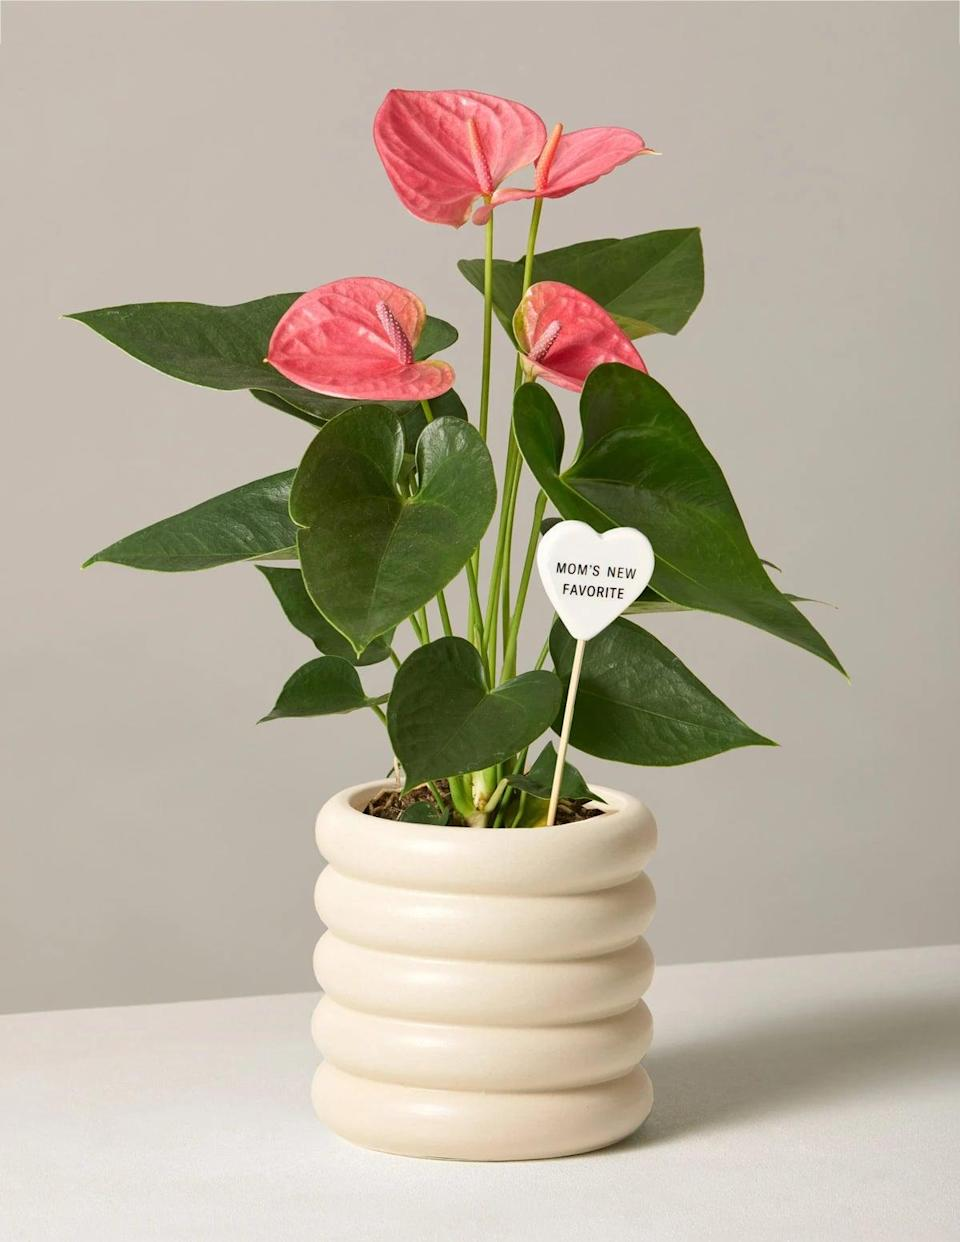 """<p>We absolutely love the gorgeous blush color of the <a href=""""https://www.popsugar.com/buy/Flowering-Pink-Anthurium-569144?p_name=Flowering%20Pink%20Anthurium&retailer=thesill.com&pid=569144&price=65&evar1=casa%3Aus&evar9=46127505&evar98=https%3A%2F%2Fwww.popsugar.com%2Fhome%2Fphoto-gallery%2F46127505%2Fimage%2F46129845%2FFlowering-Pink-Anthurium&list1=shopping%2Cgift%20guide%2Cflowers%2Chouse%20plants%2Cplants%2Cmothers%20day%2Cgifts%20for%20women&prop13=api&pdata=1"""" class=""""link rapid-noclick-resp"""" rel=""""nofollow noopener"""" target=""""_blank"""" data-ylk=""""slk:Flowering Pink Anthurium"""">Flowering Pink Anthurium</a> ($65). Since each bloom can last up to eight weeks, this really is the gift that keeps on giving!</p>"""